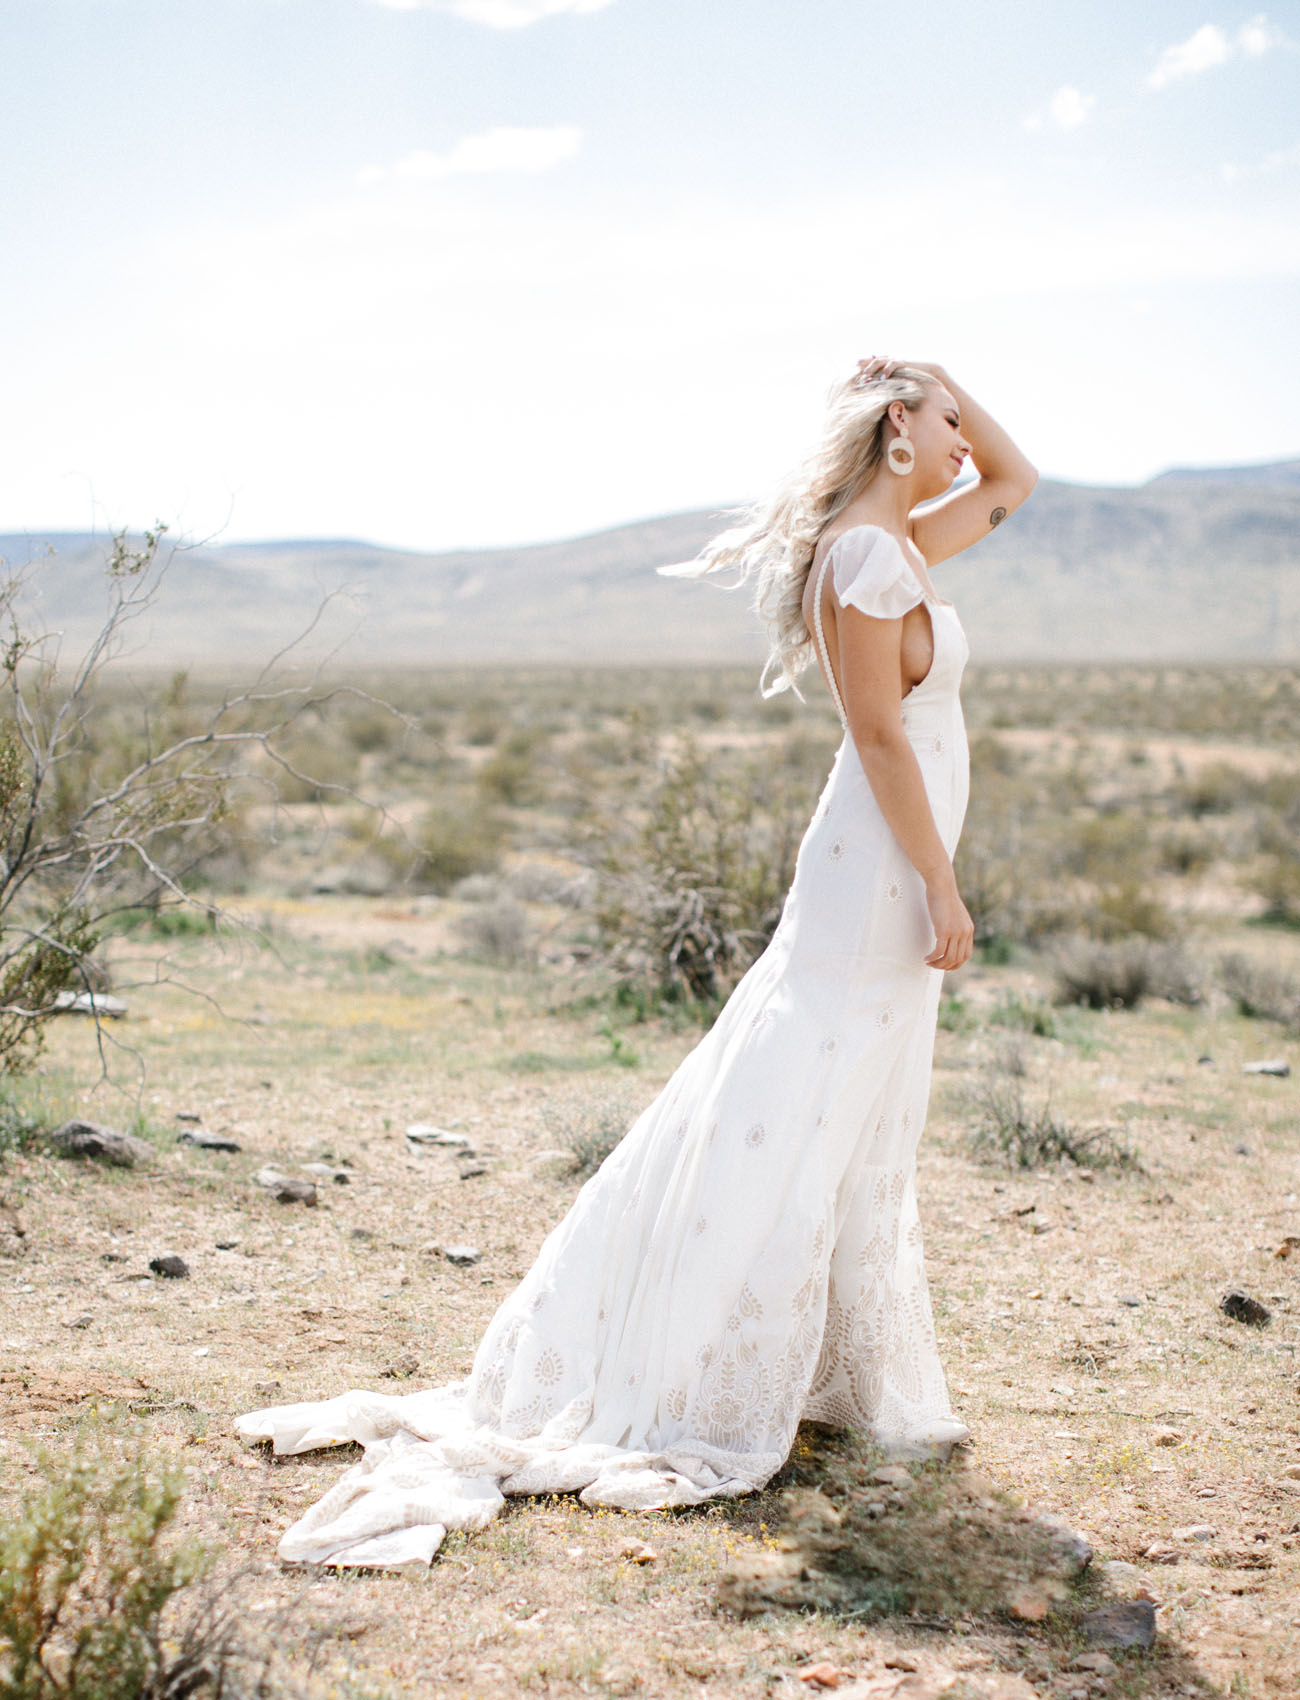 The bride was wearing an A line wedding dress with a square cut, ruffle cap sleeves and tan boho lace